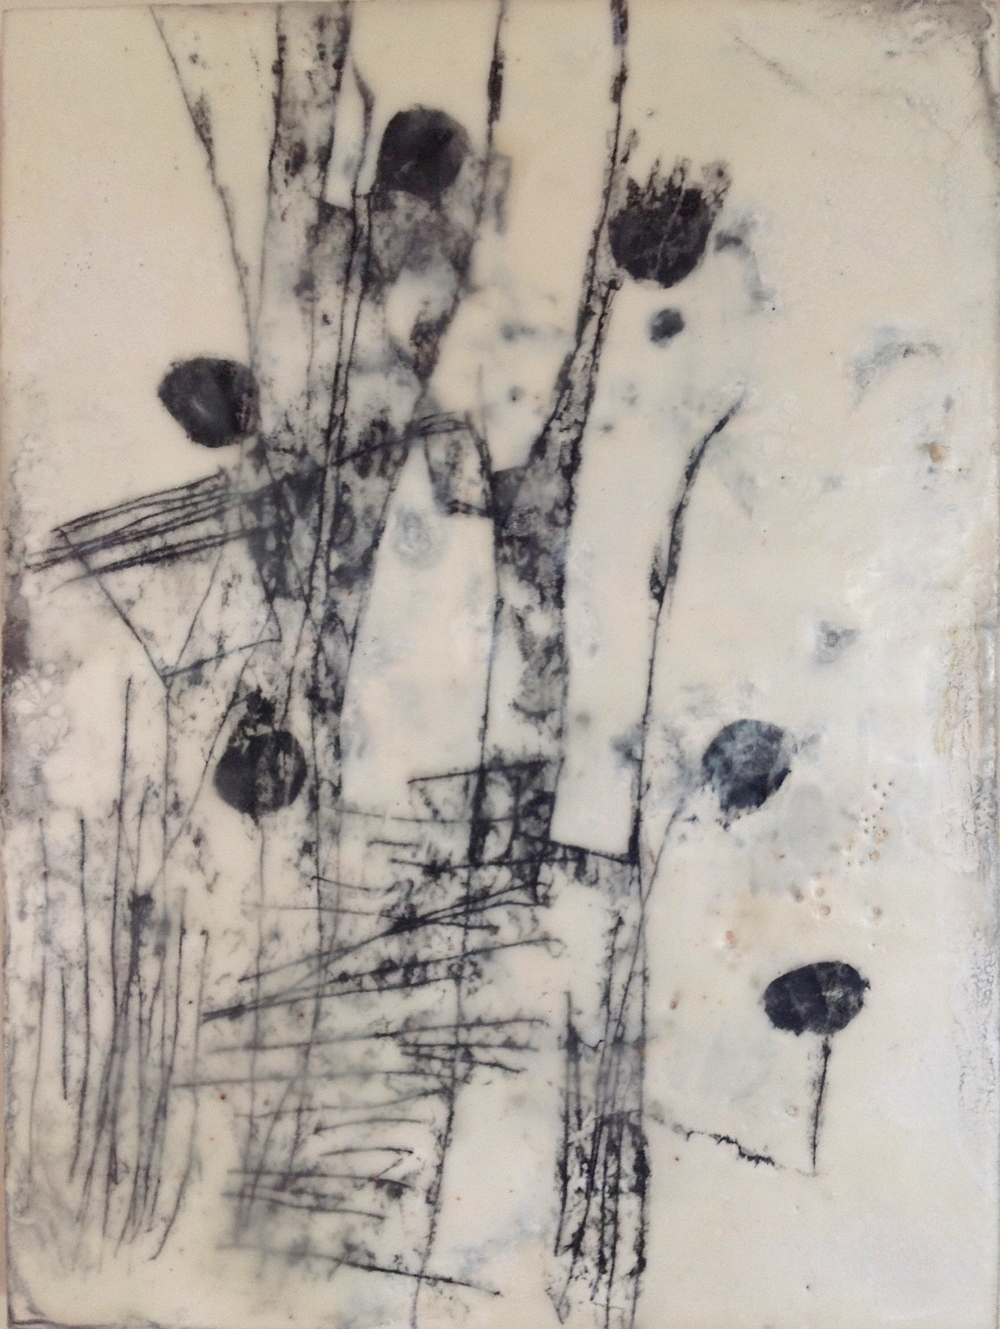 Cycles + Structures, 2012 / Encaustic on wood panel, 9 x 12